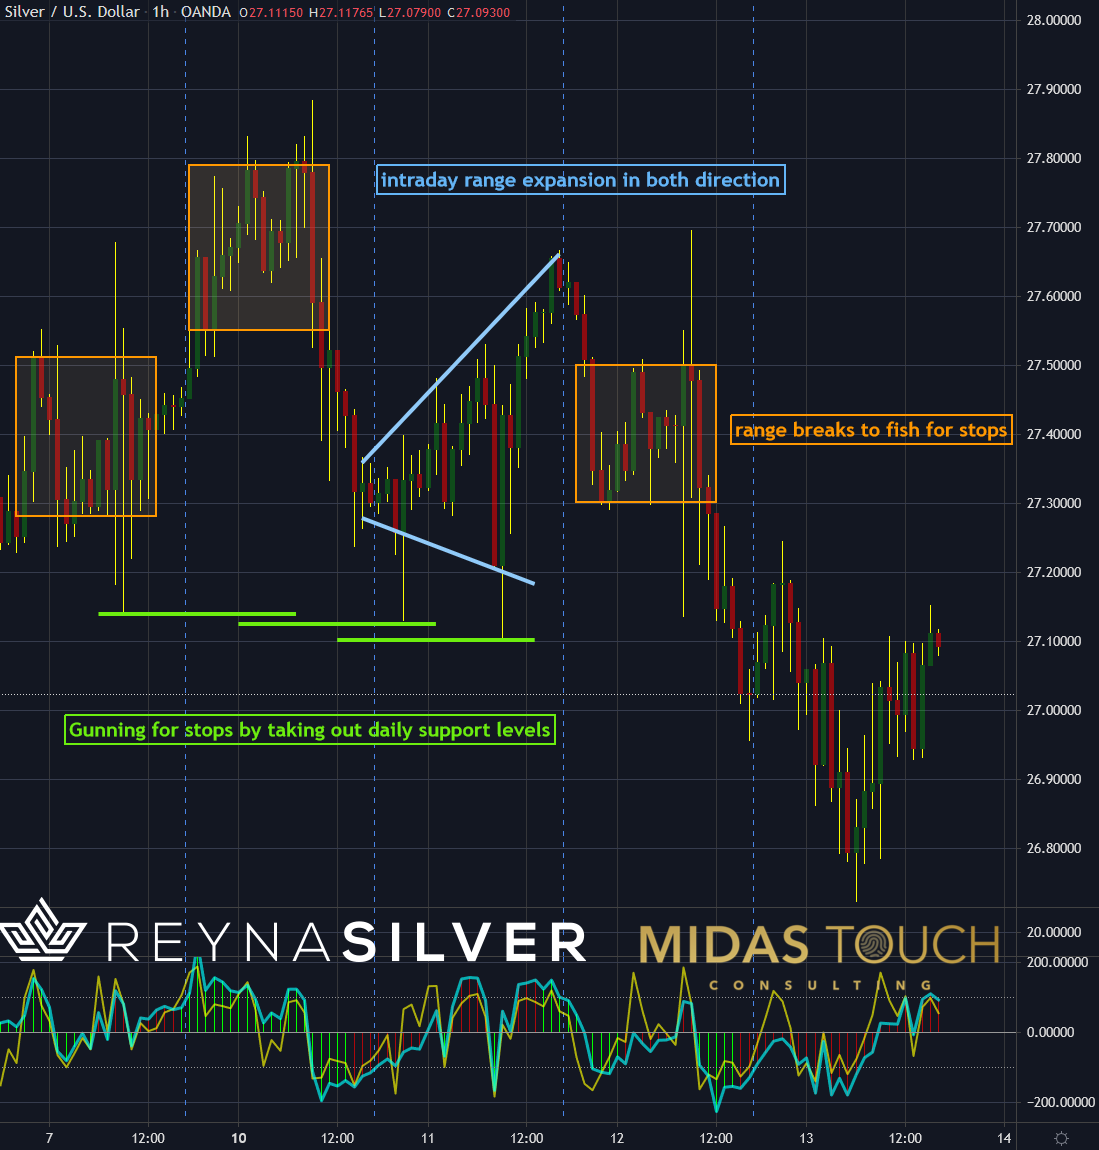 Silver in US-Dollar, hourly chart as of May 13th, 2021.